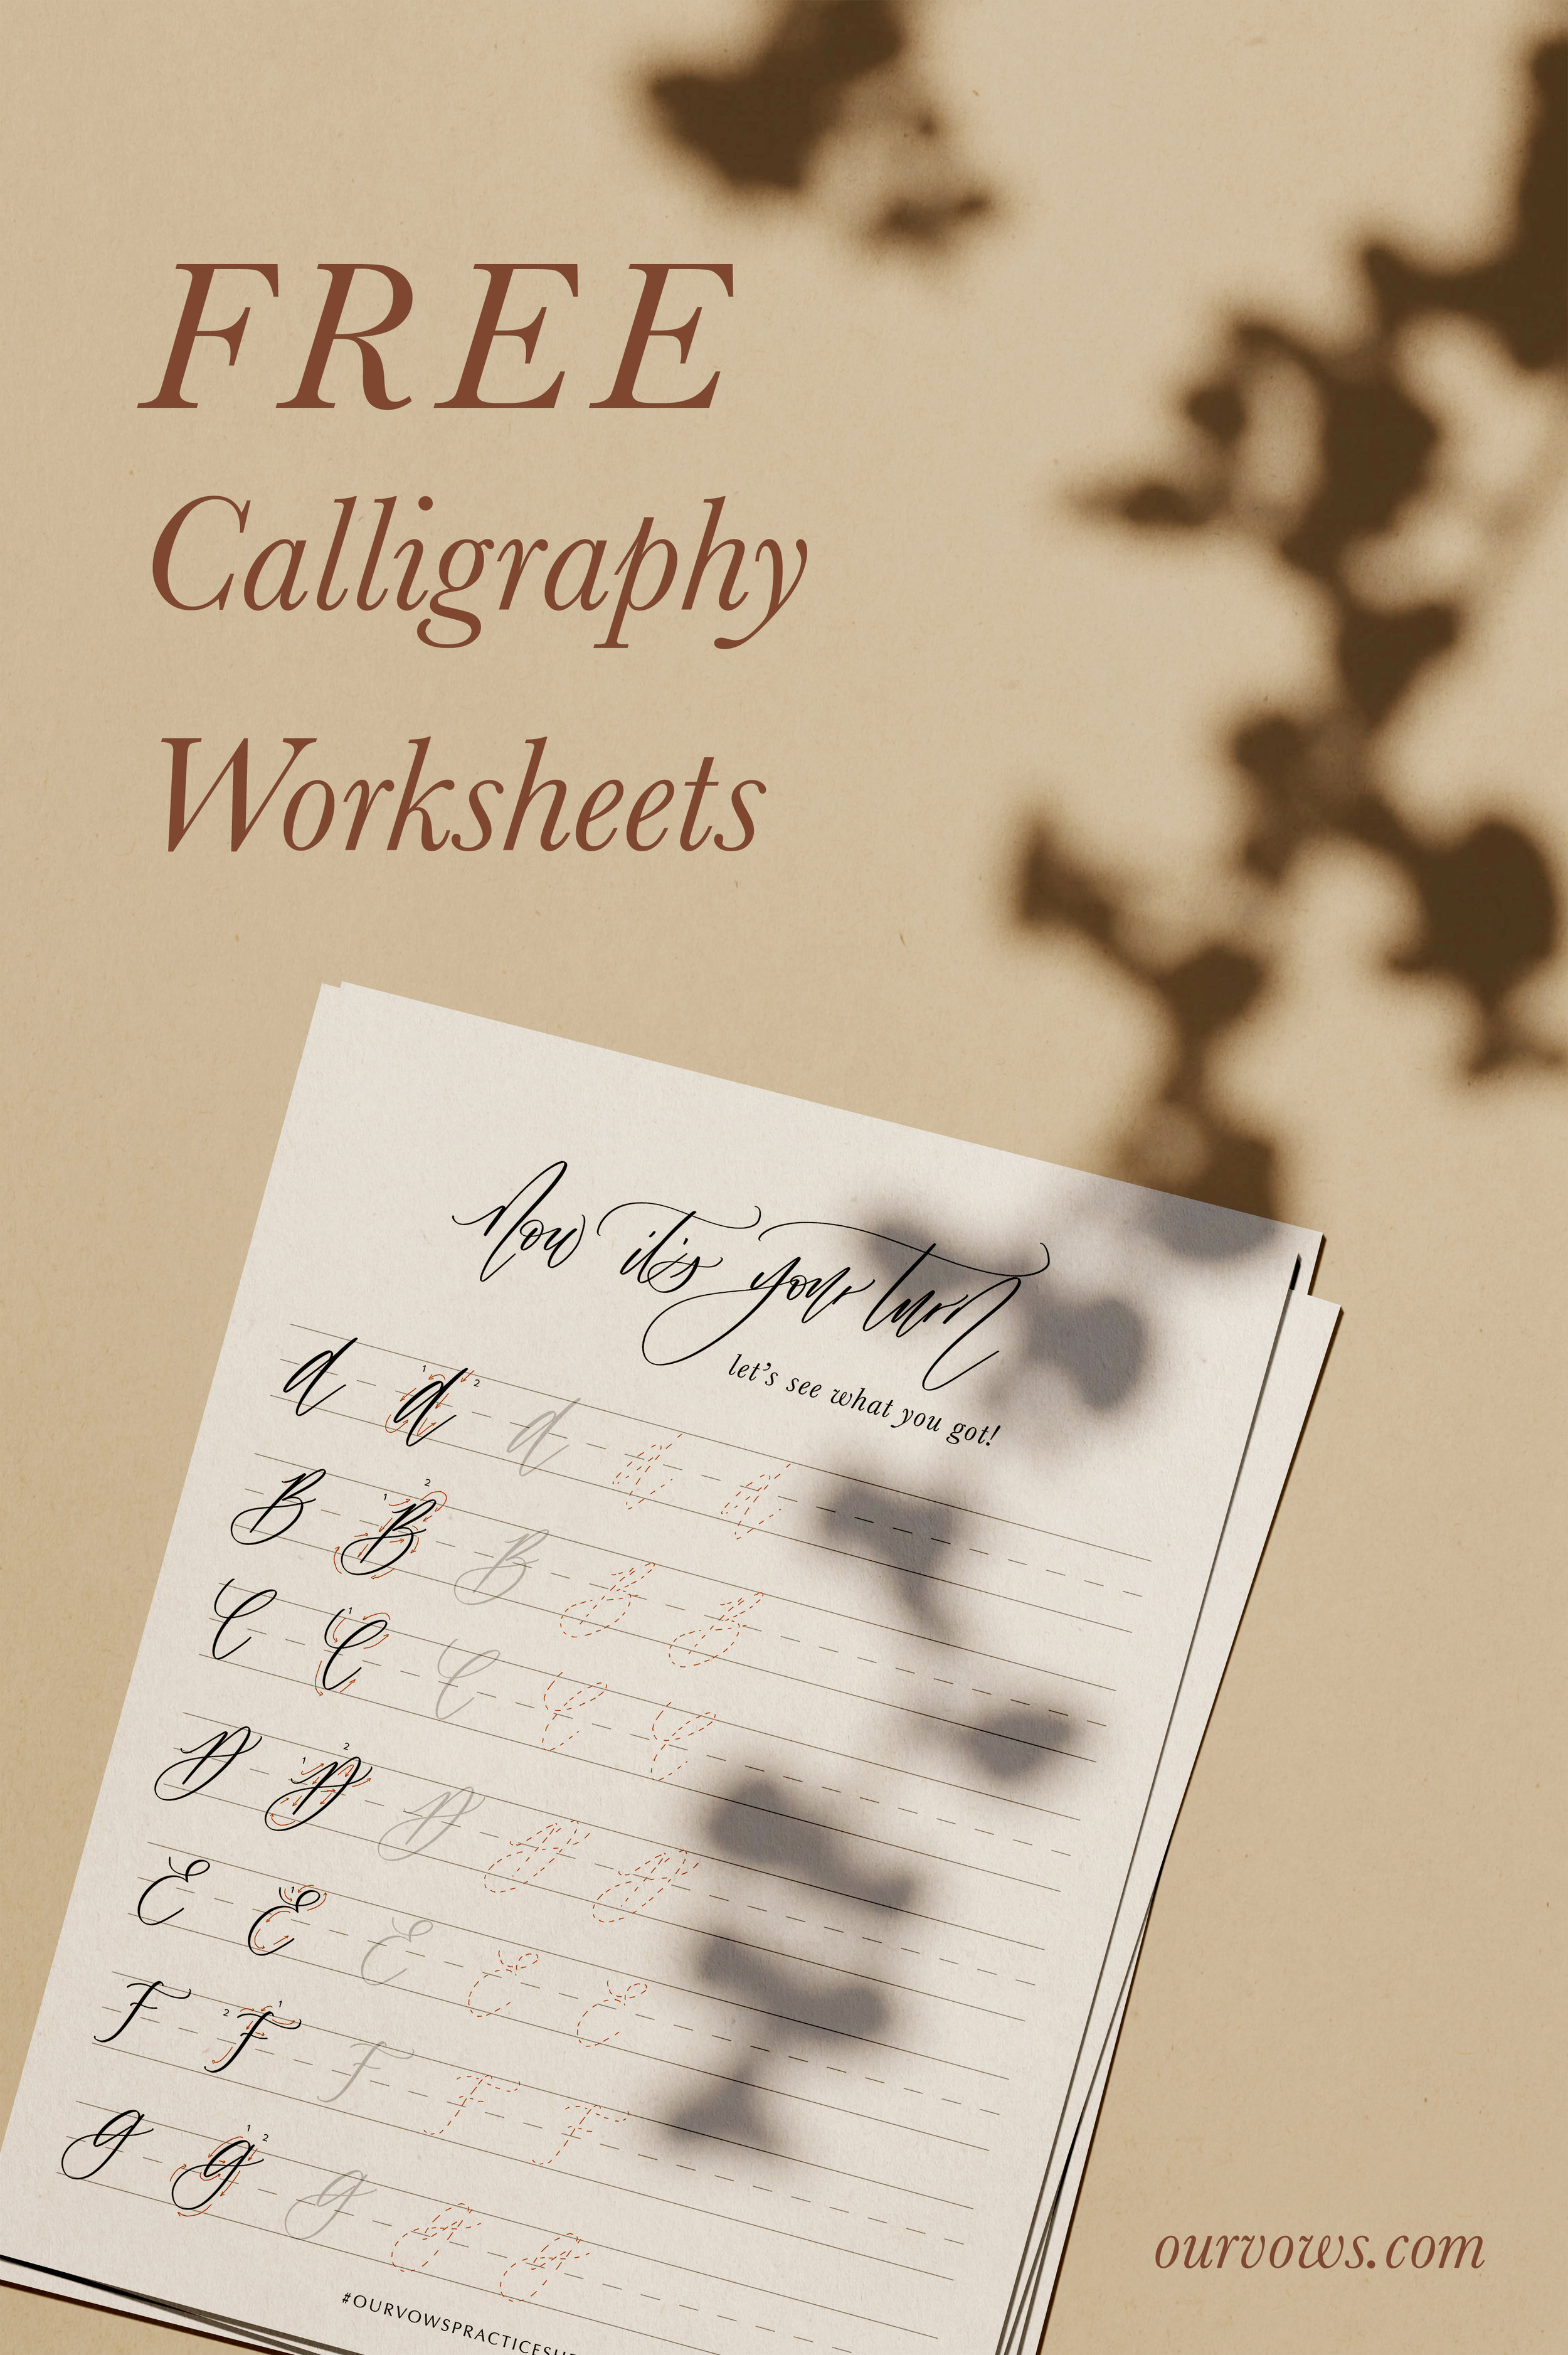 Free Calligraphy Worksheets by Our Vows